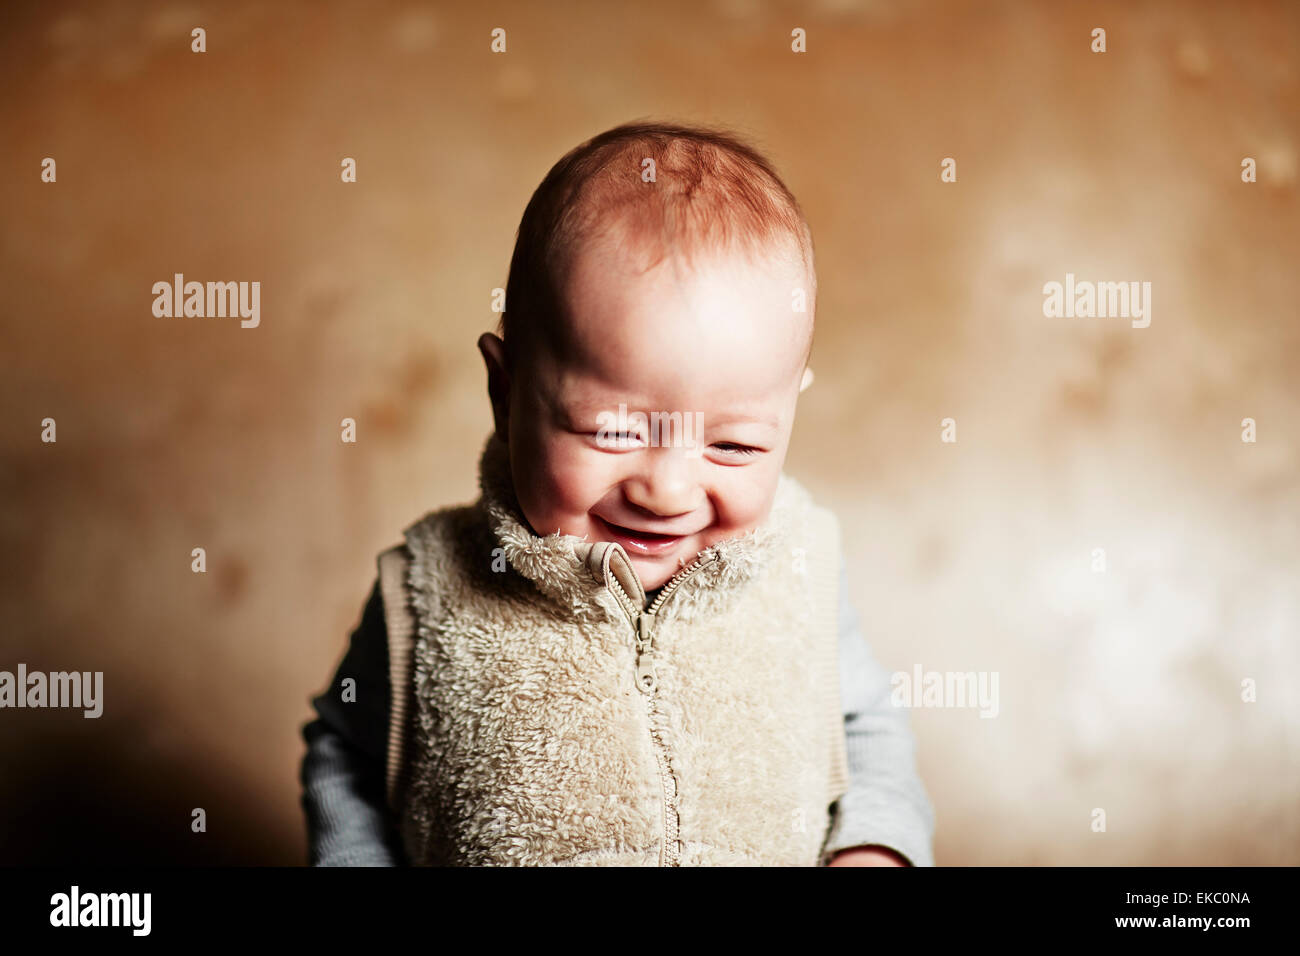 Portrait of cute baby boy looking down and giggling - Stock Image